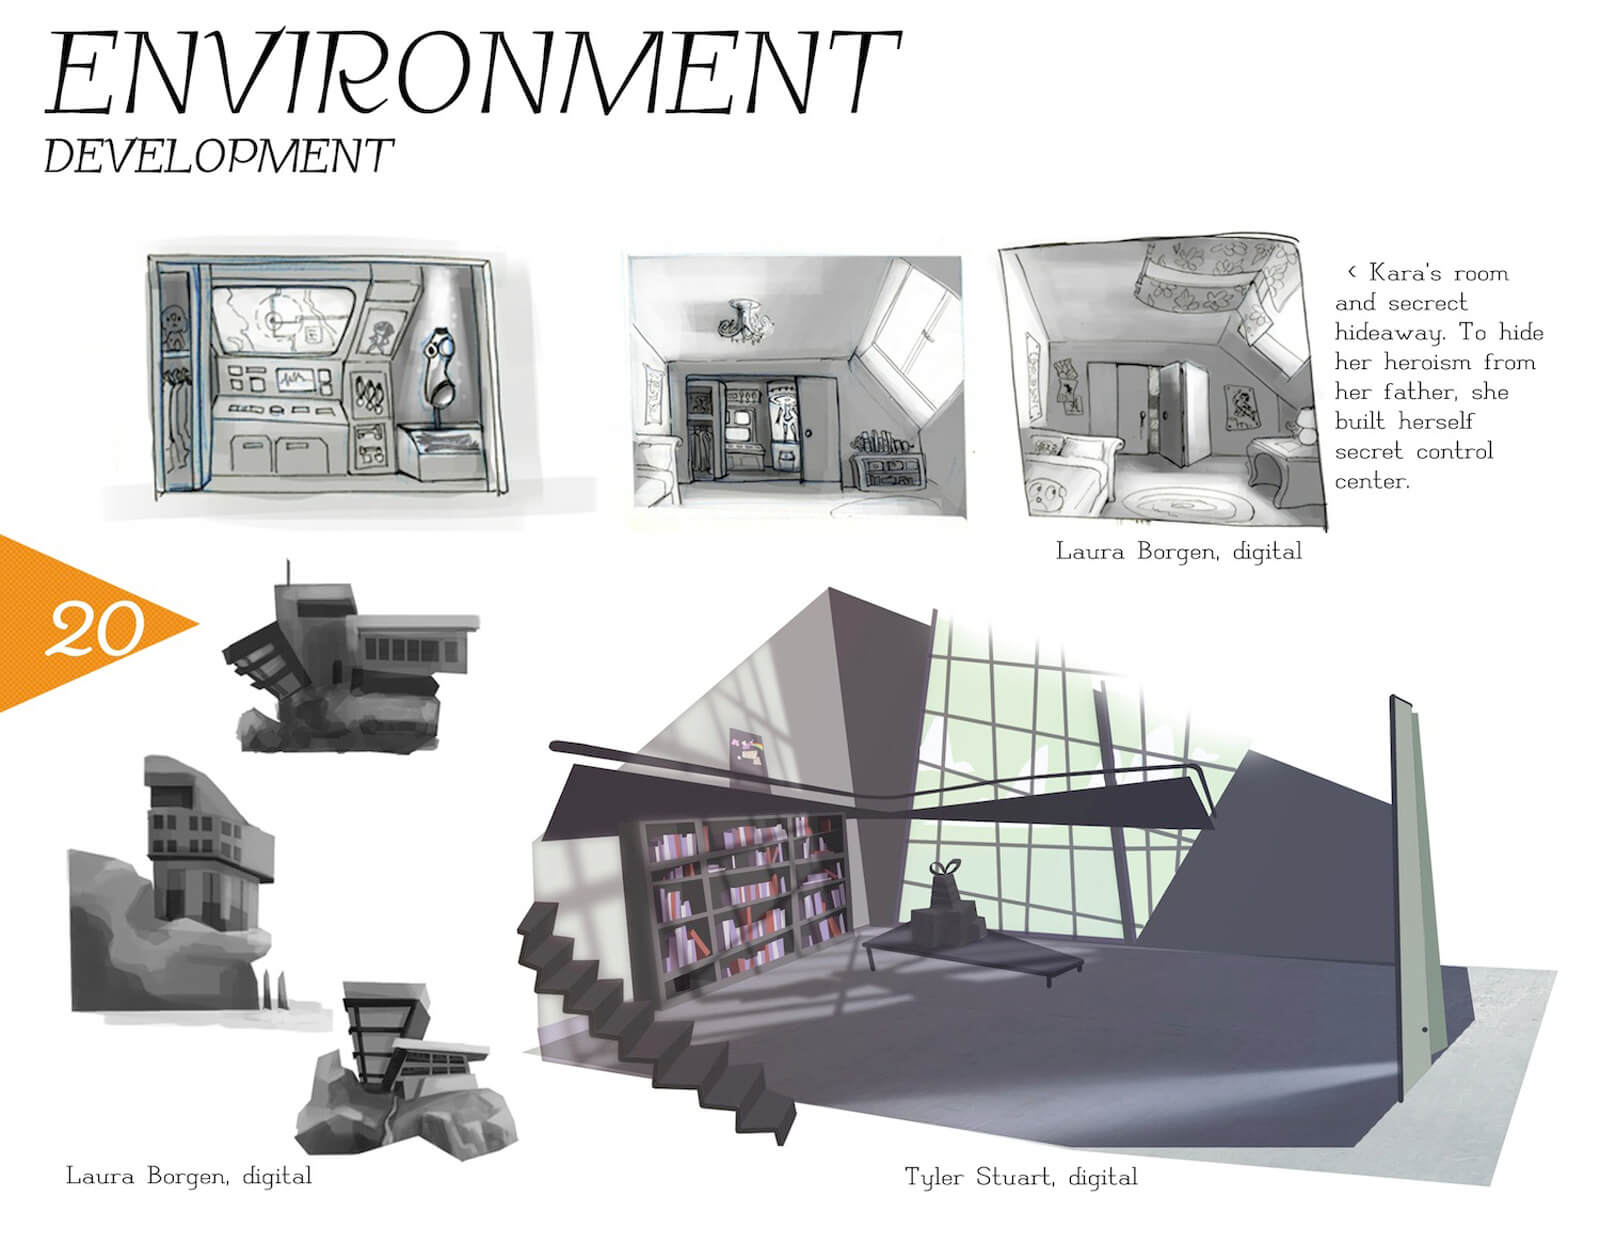 Development slide showing the progression of the loft apartment setting depicted in the film Super Secret